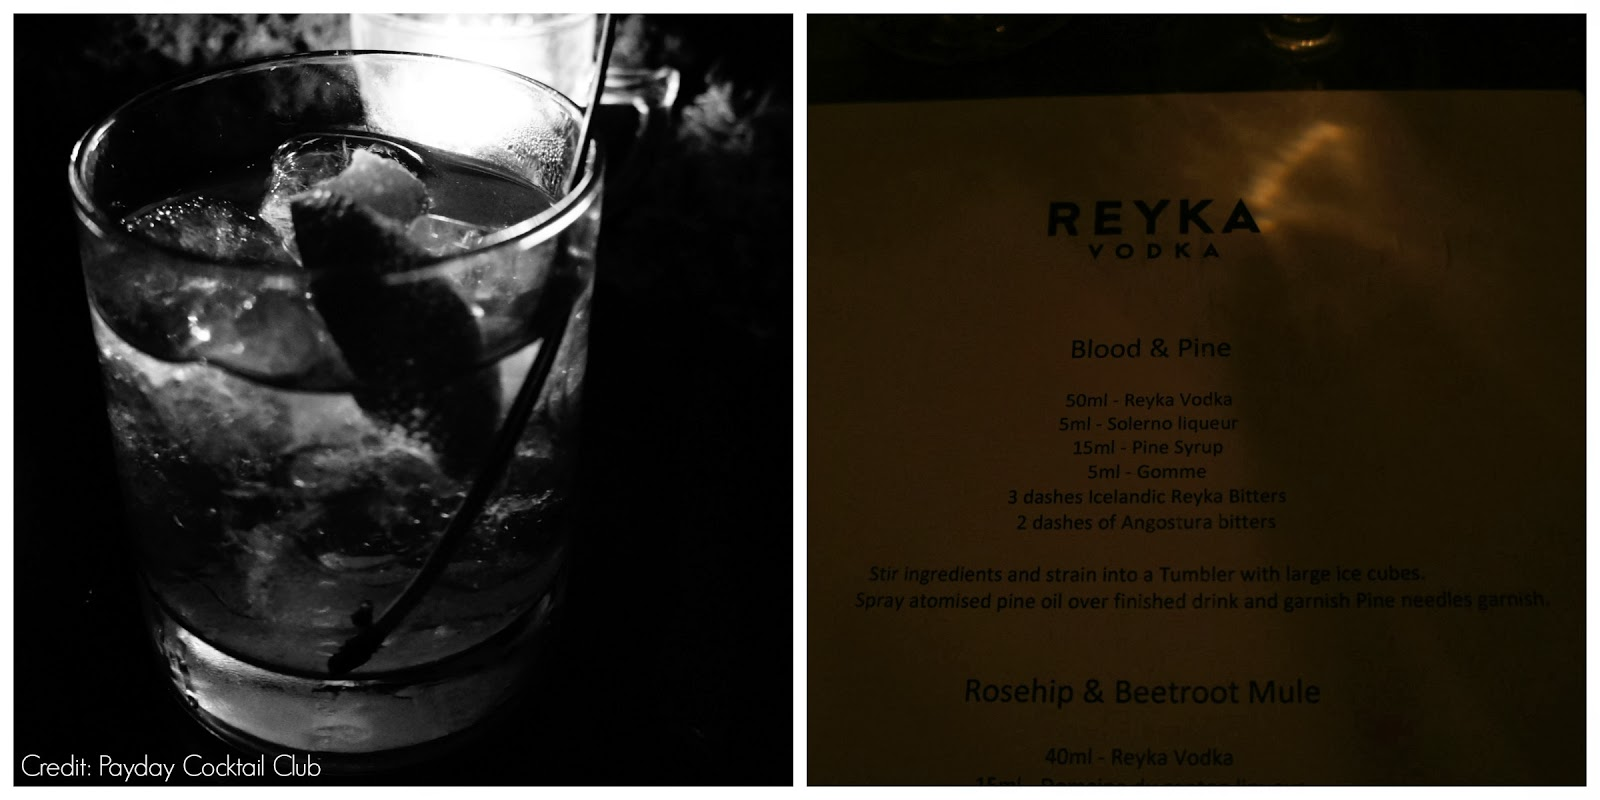 Reyka Vodka bitters launch party at Looking Glass Cocktail Club